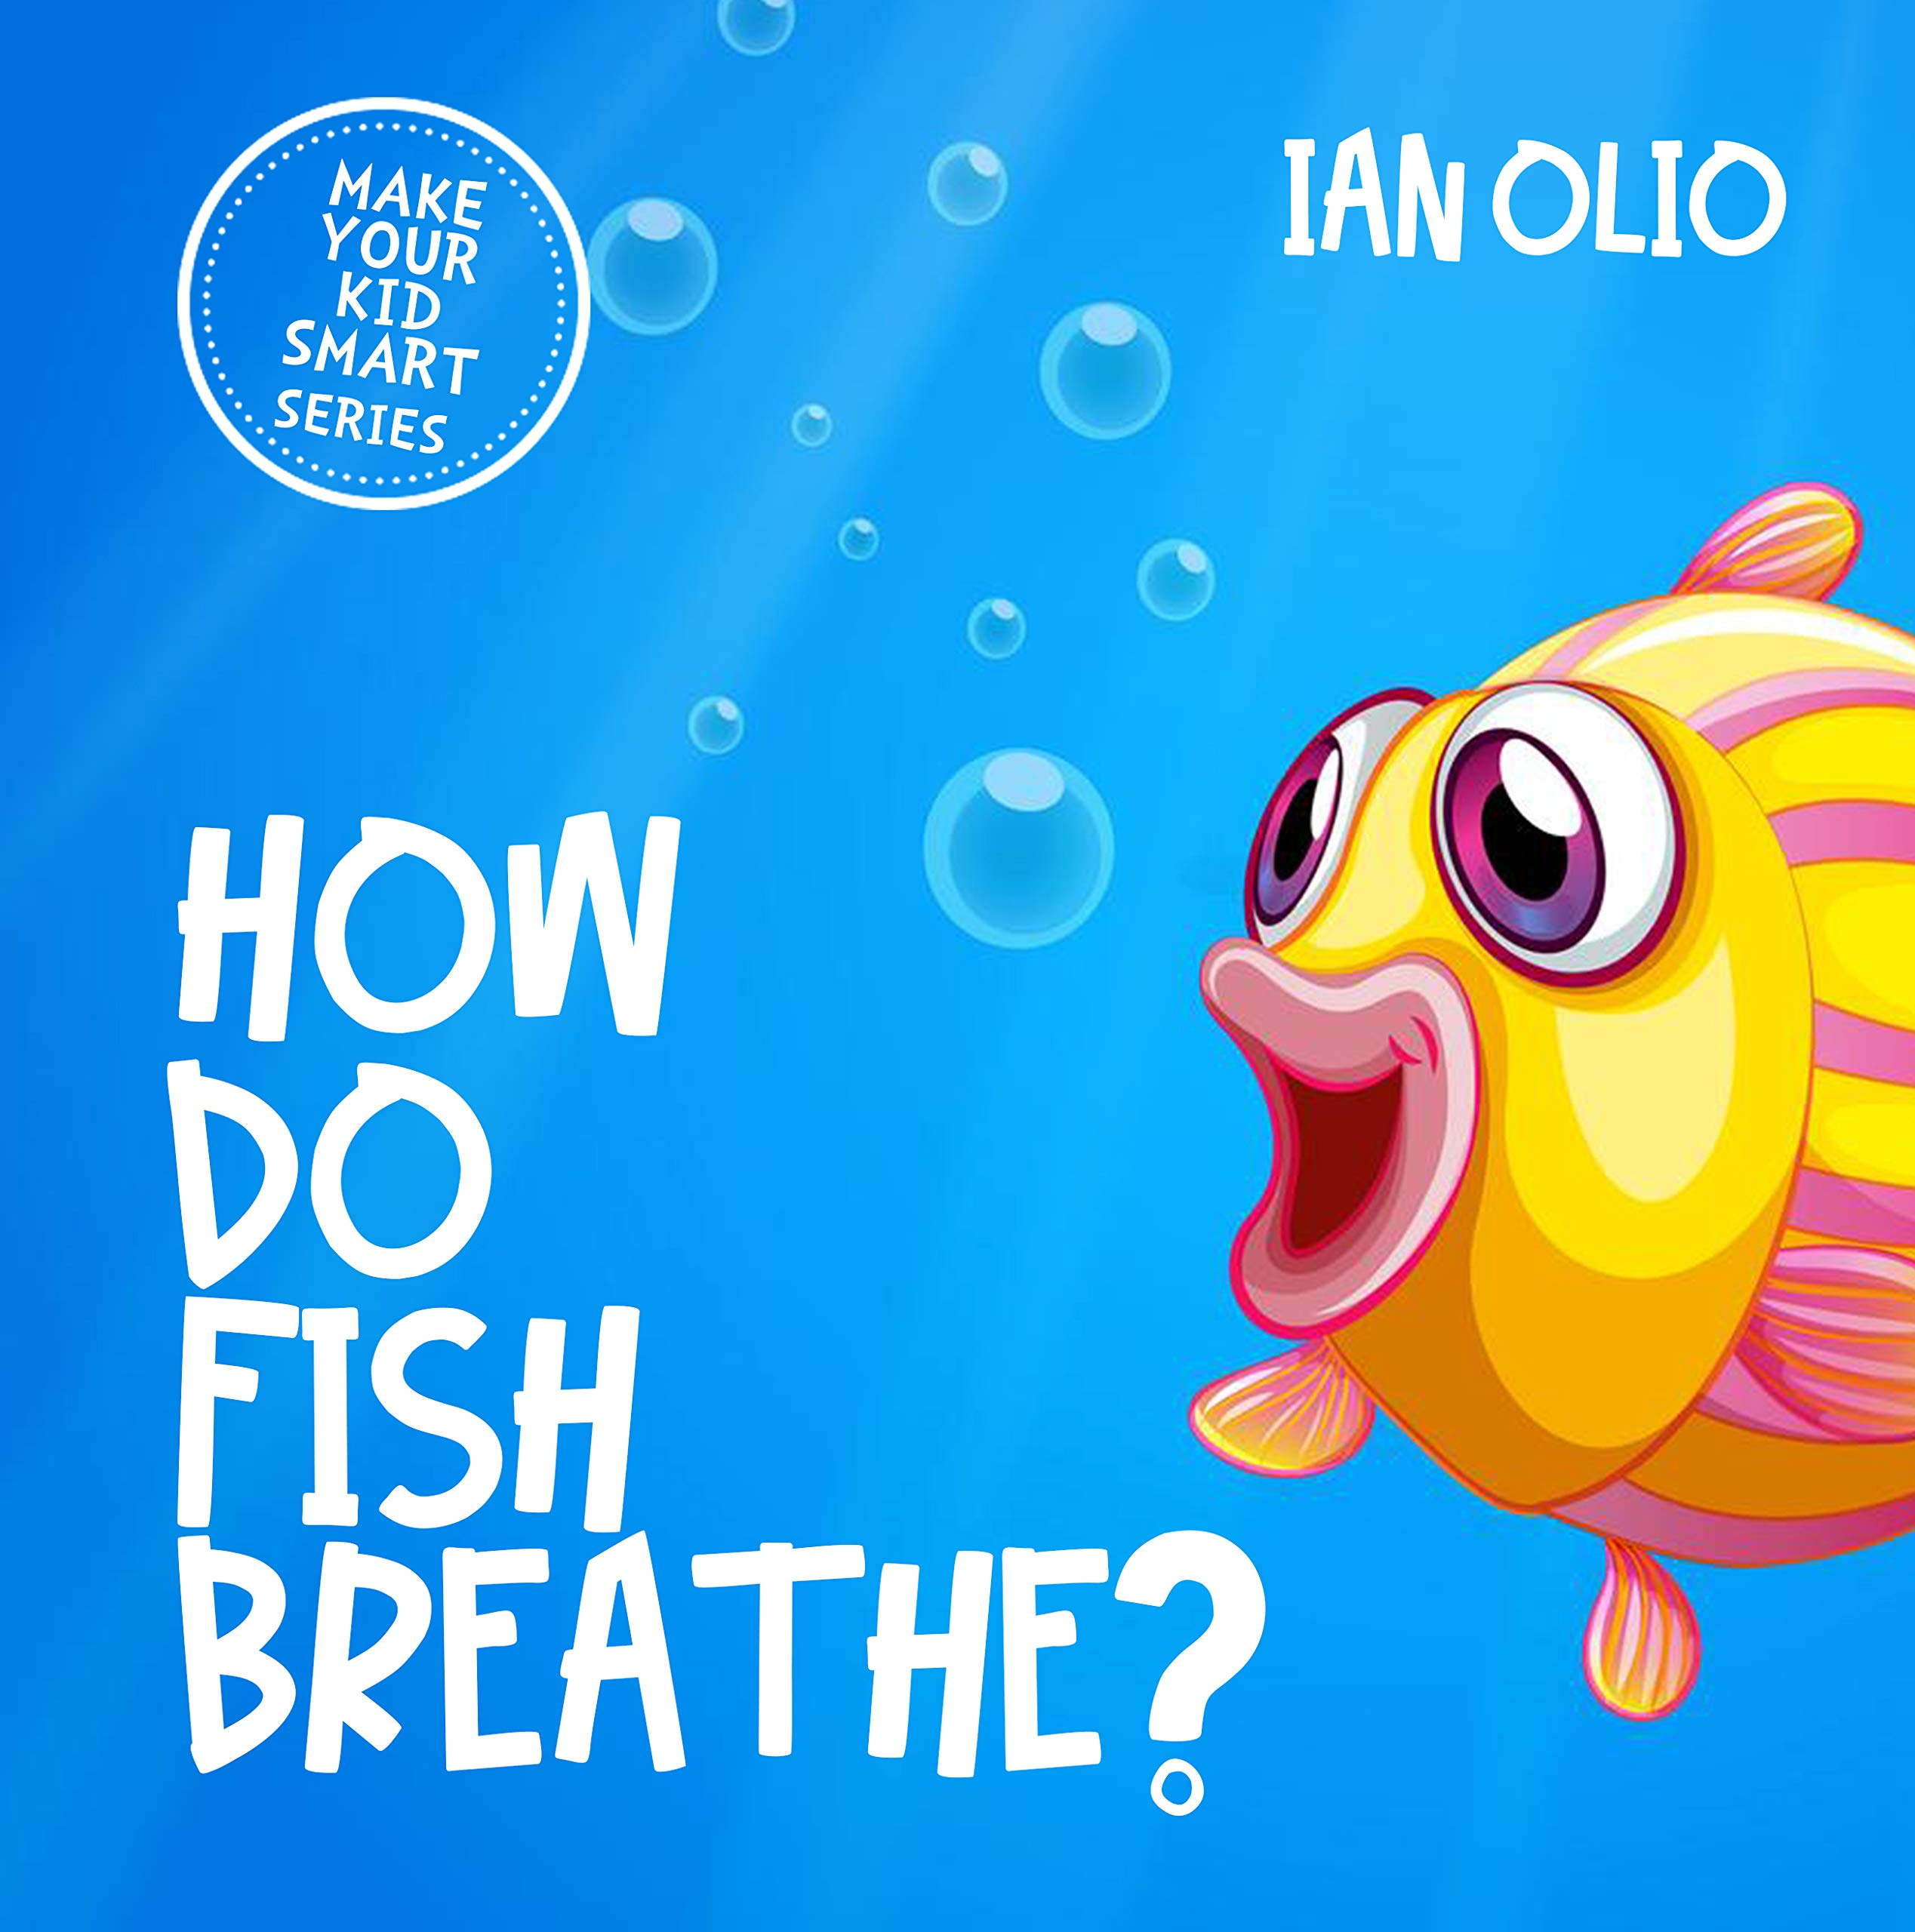 How Do Fish Breathe? MAKE YOUR KID SMART SERIES: Book For Kids Ages 4-9!